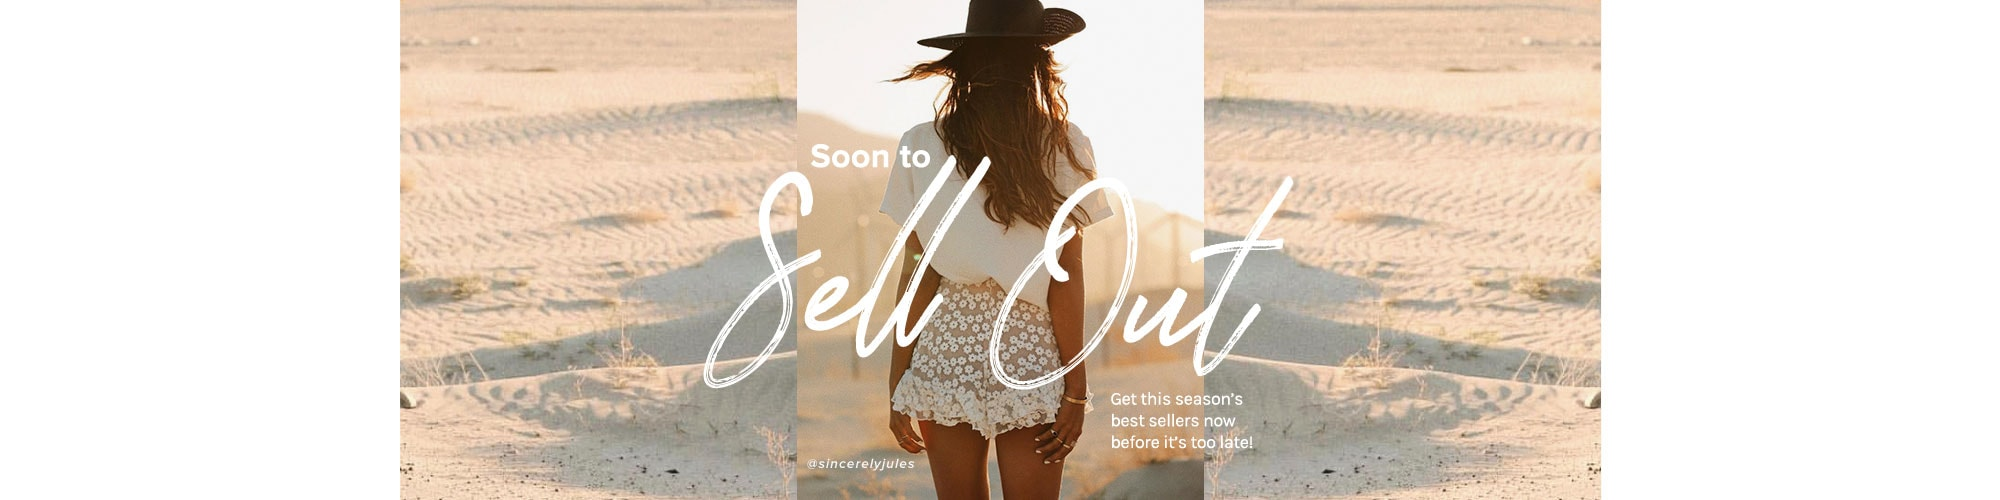 Soon to Sell Out. Get this season\u2019s best sellers now before it\u2019s too late! Shop Best Sellers.